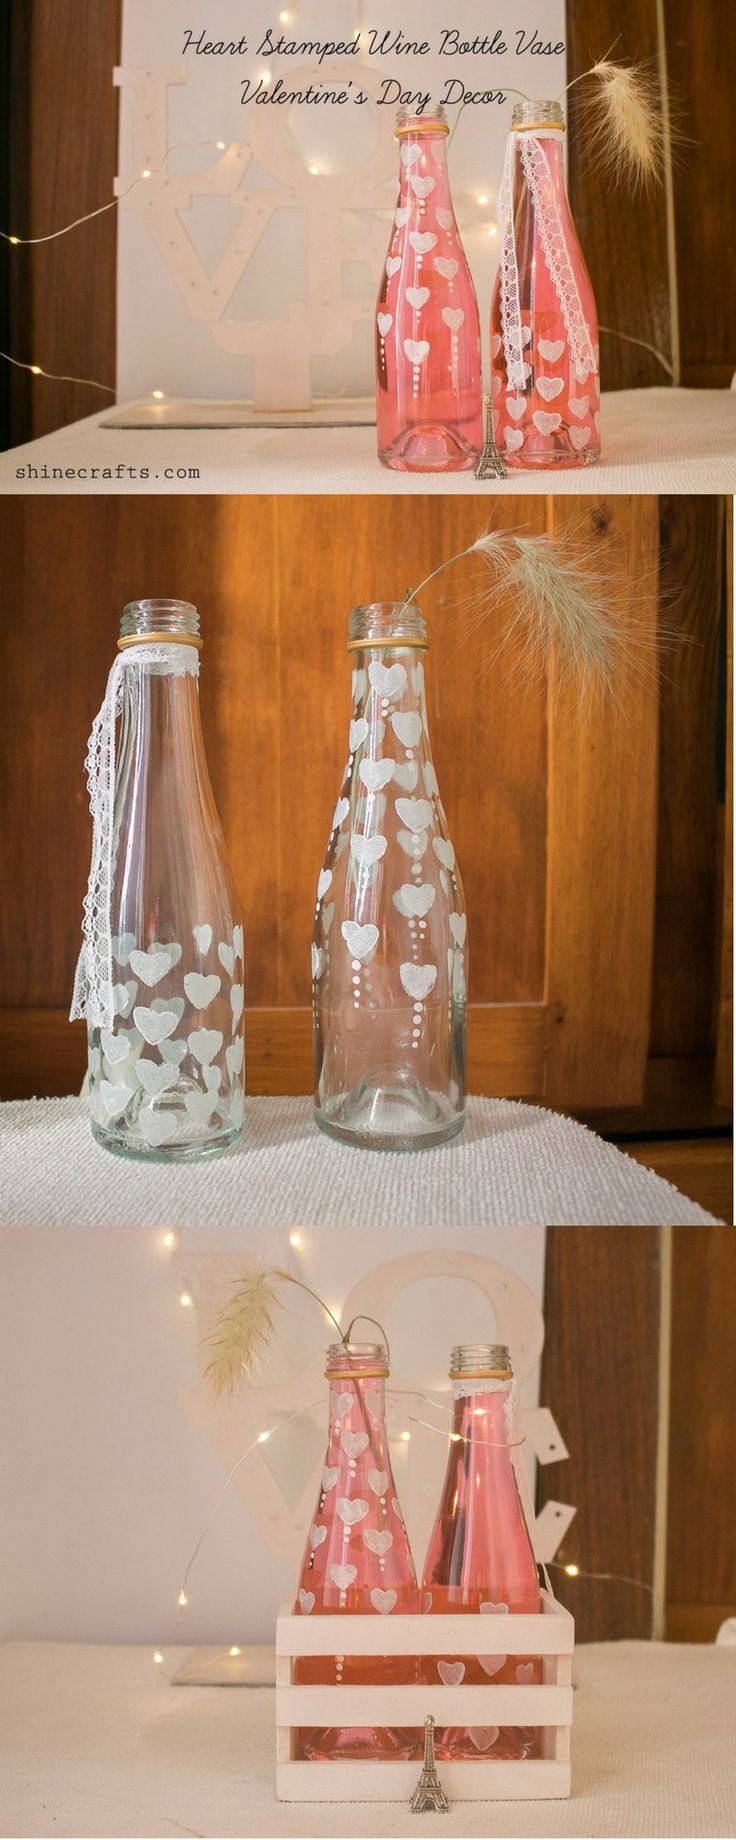 How To Make Wine Bottle Vase for Valentine's Day  #valentinesday #winebottle # vase #diy